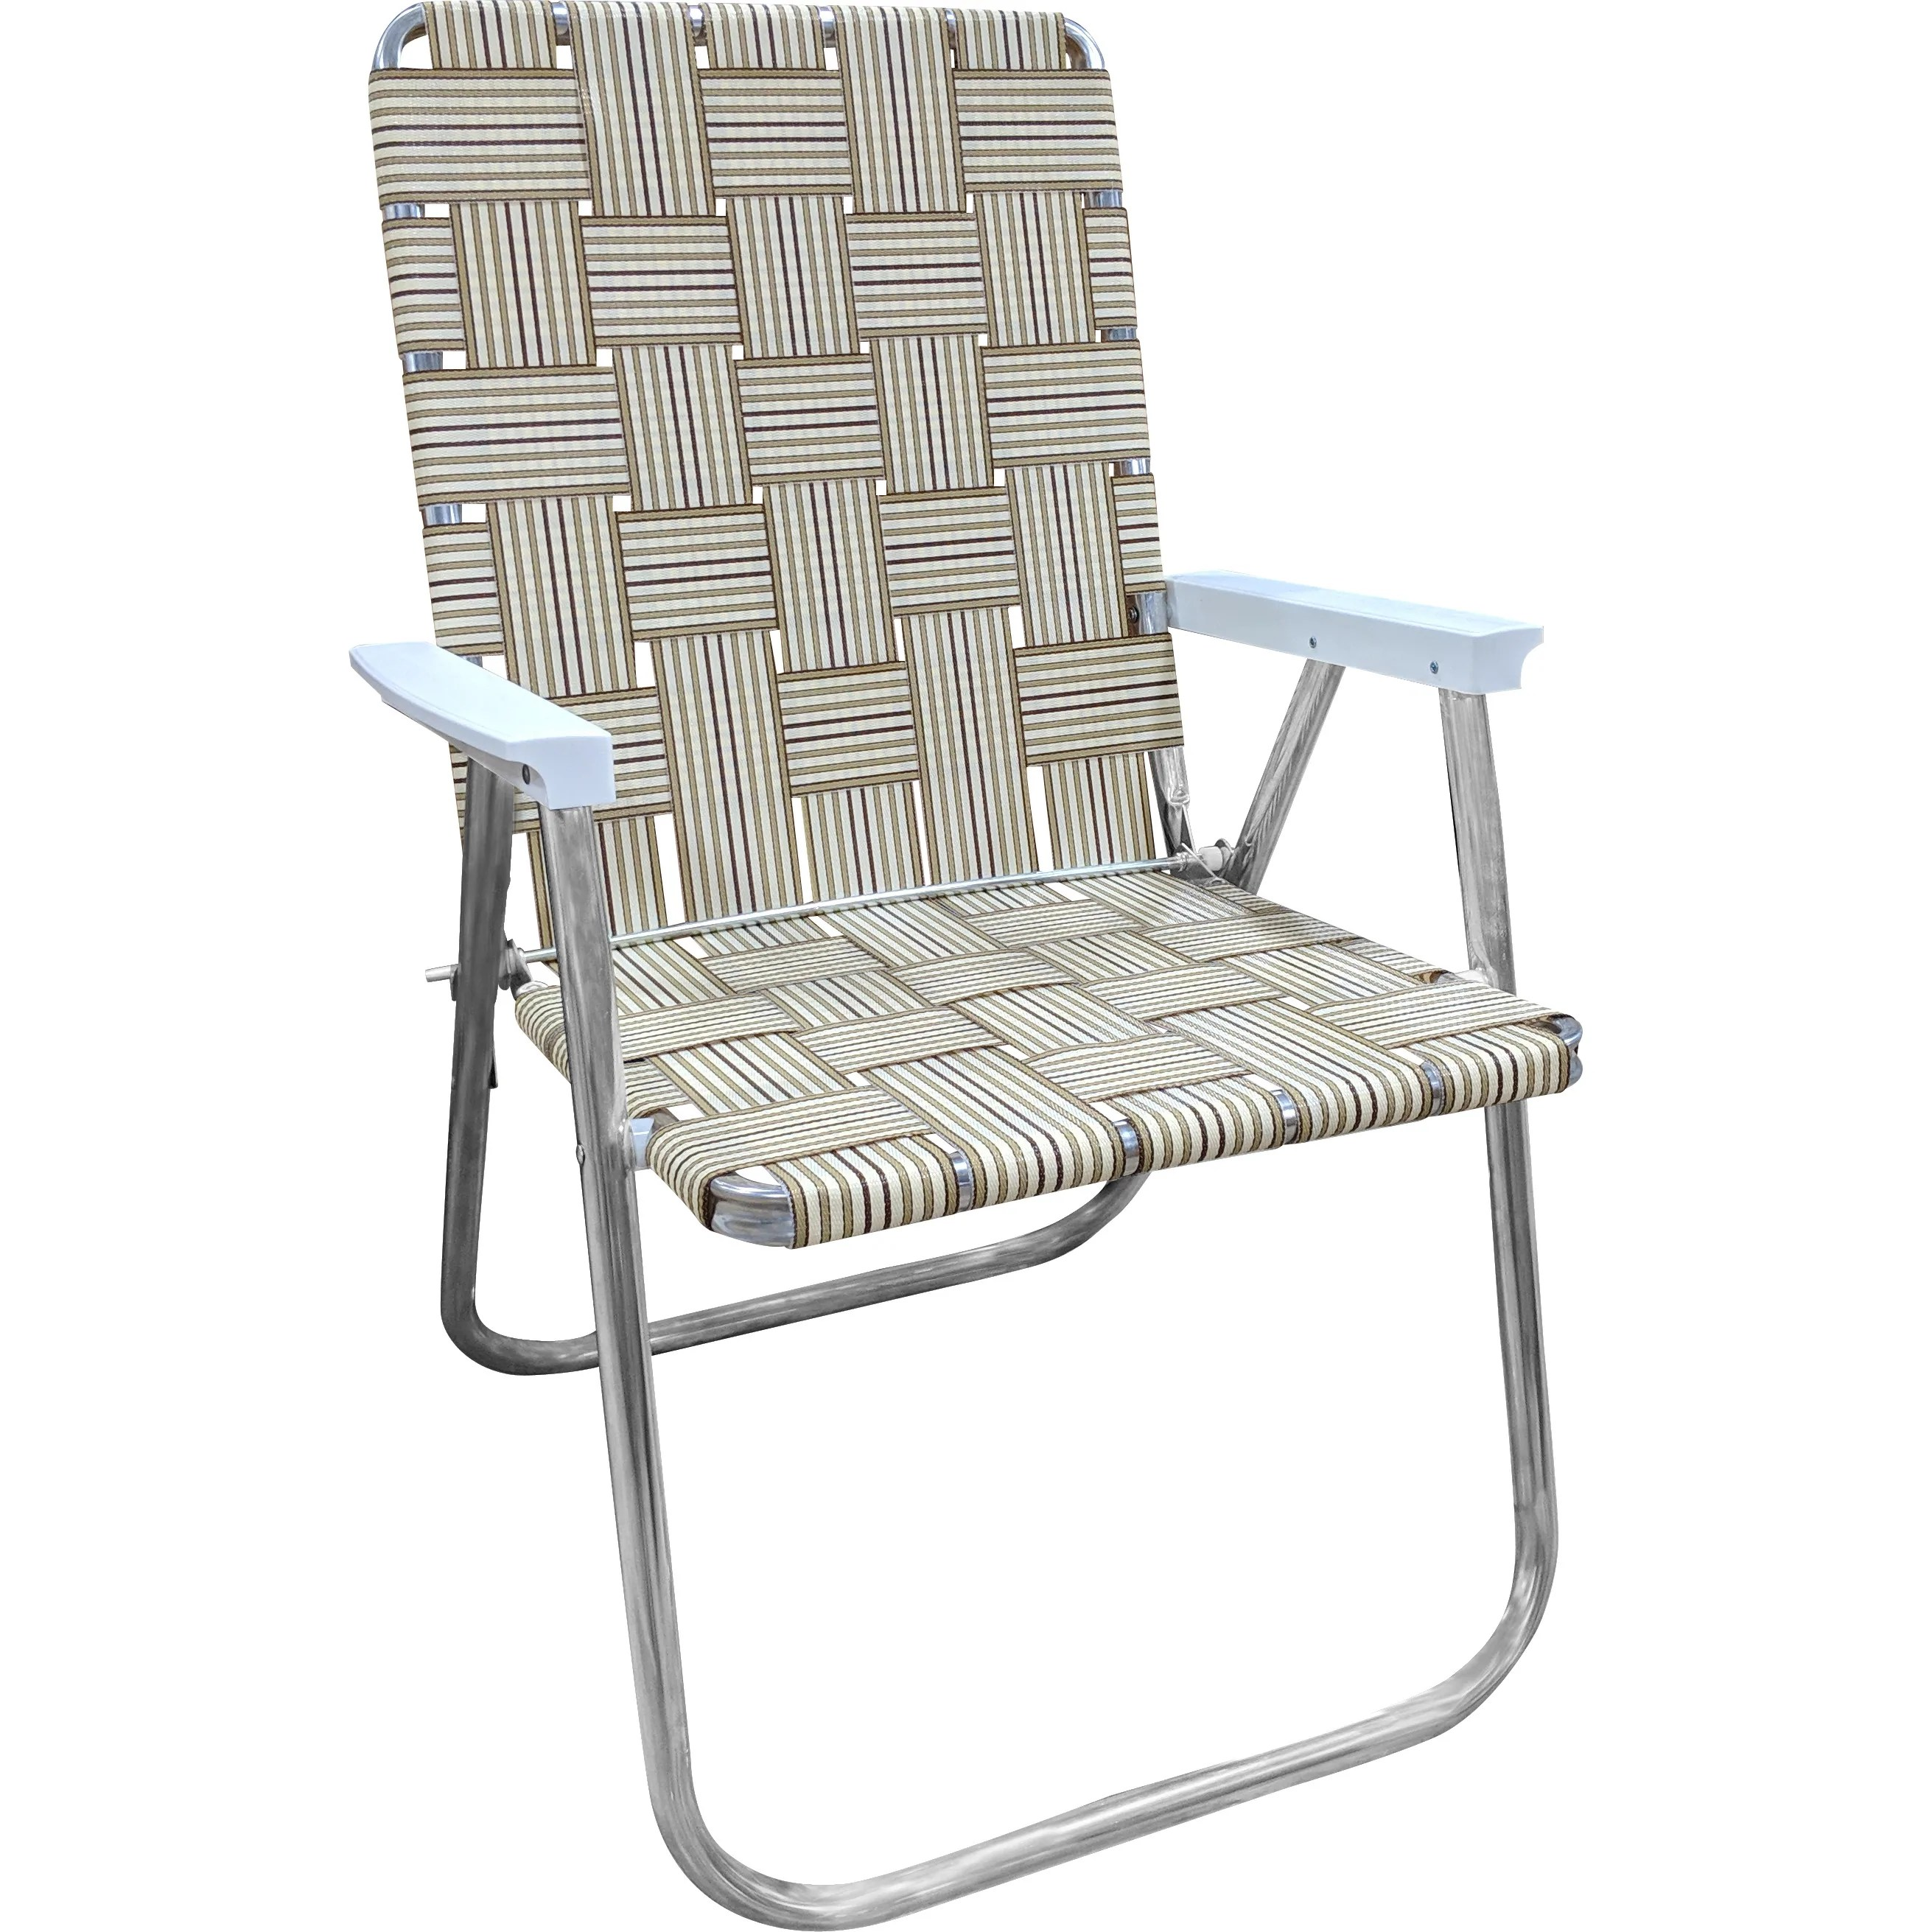 Aluminum Folding Chair Tan Stripe Classic Chair